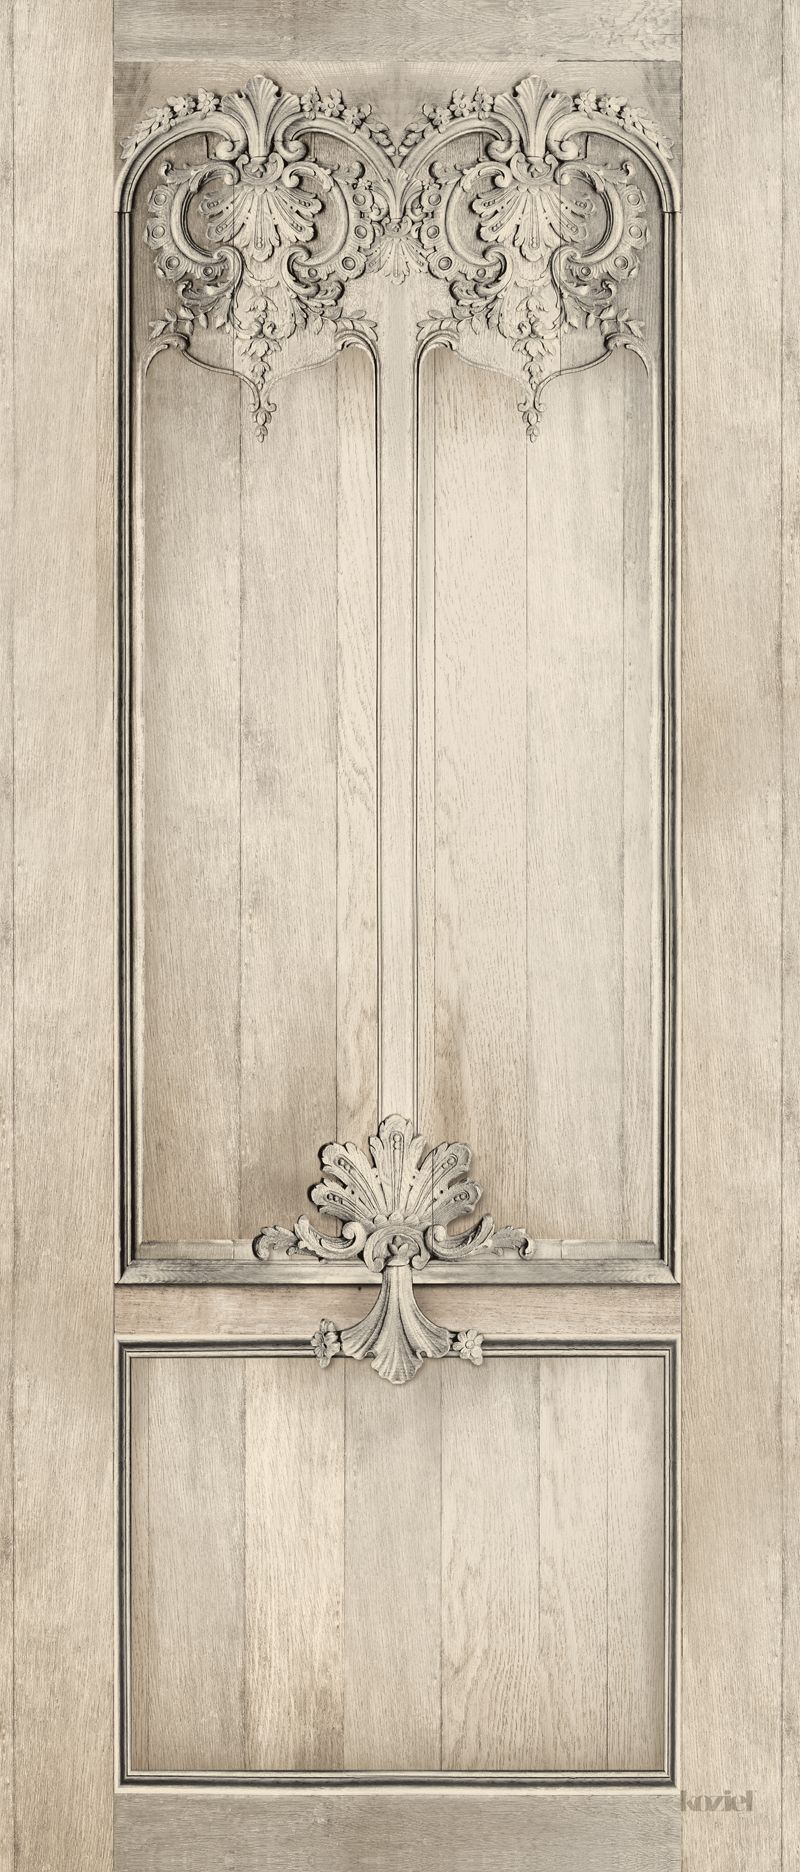 French trompe l 39 oeil wallpaper by christophe koziel for Wallpaper closet doors